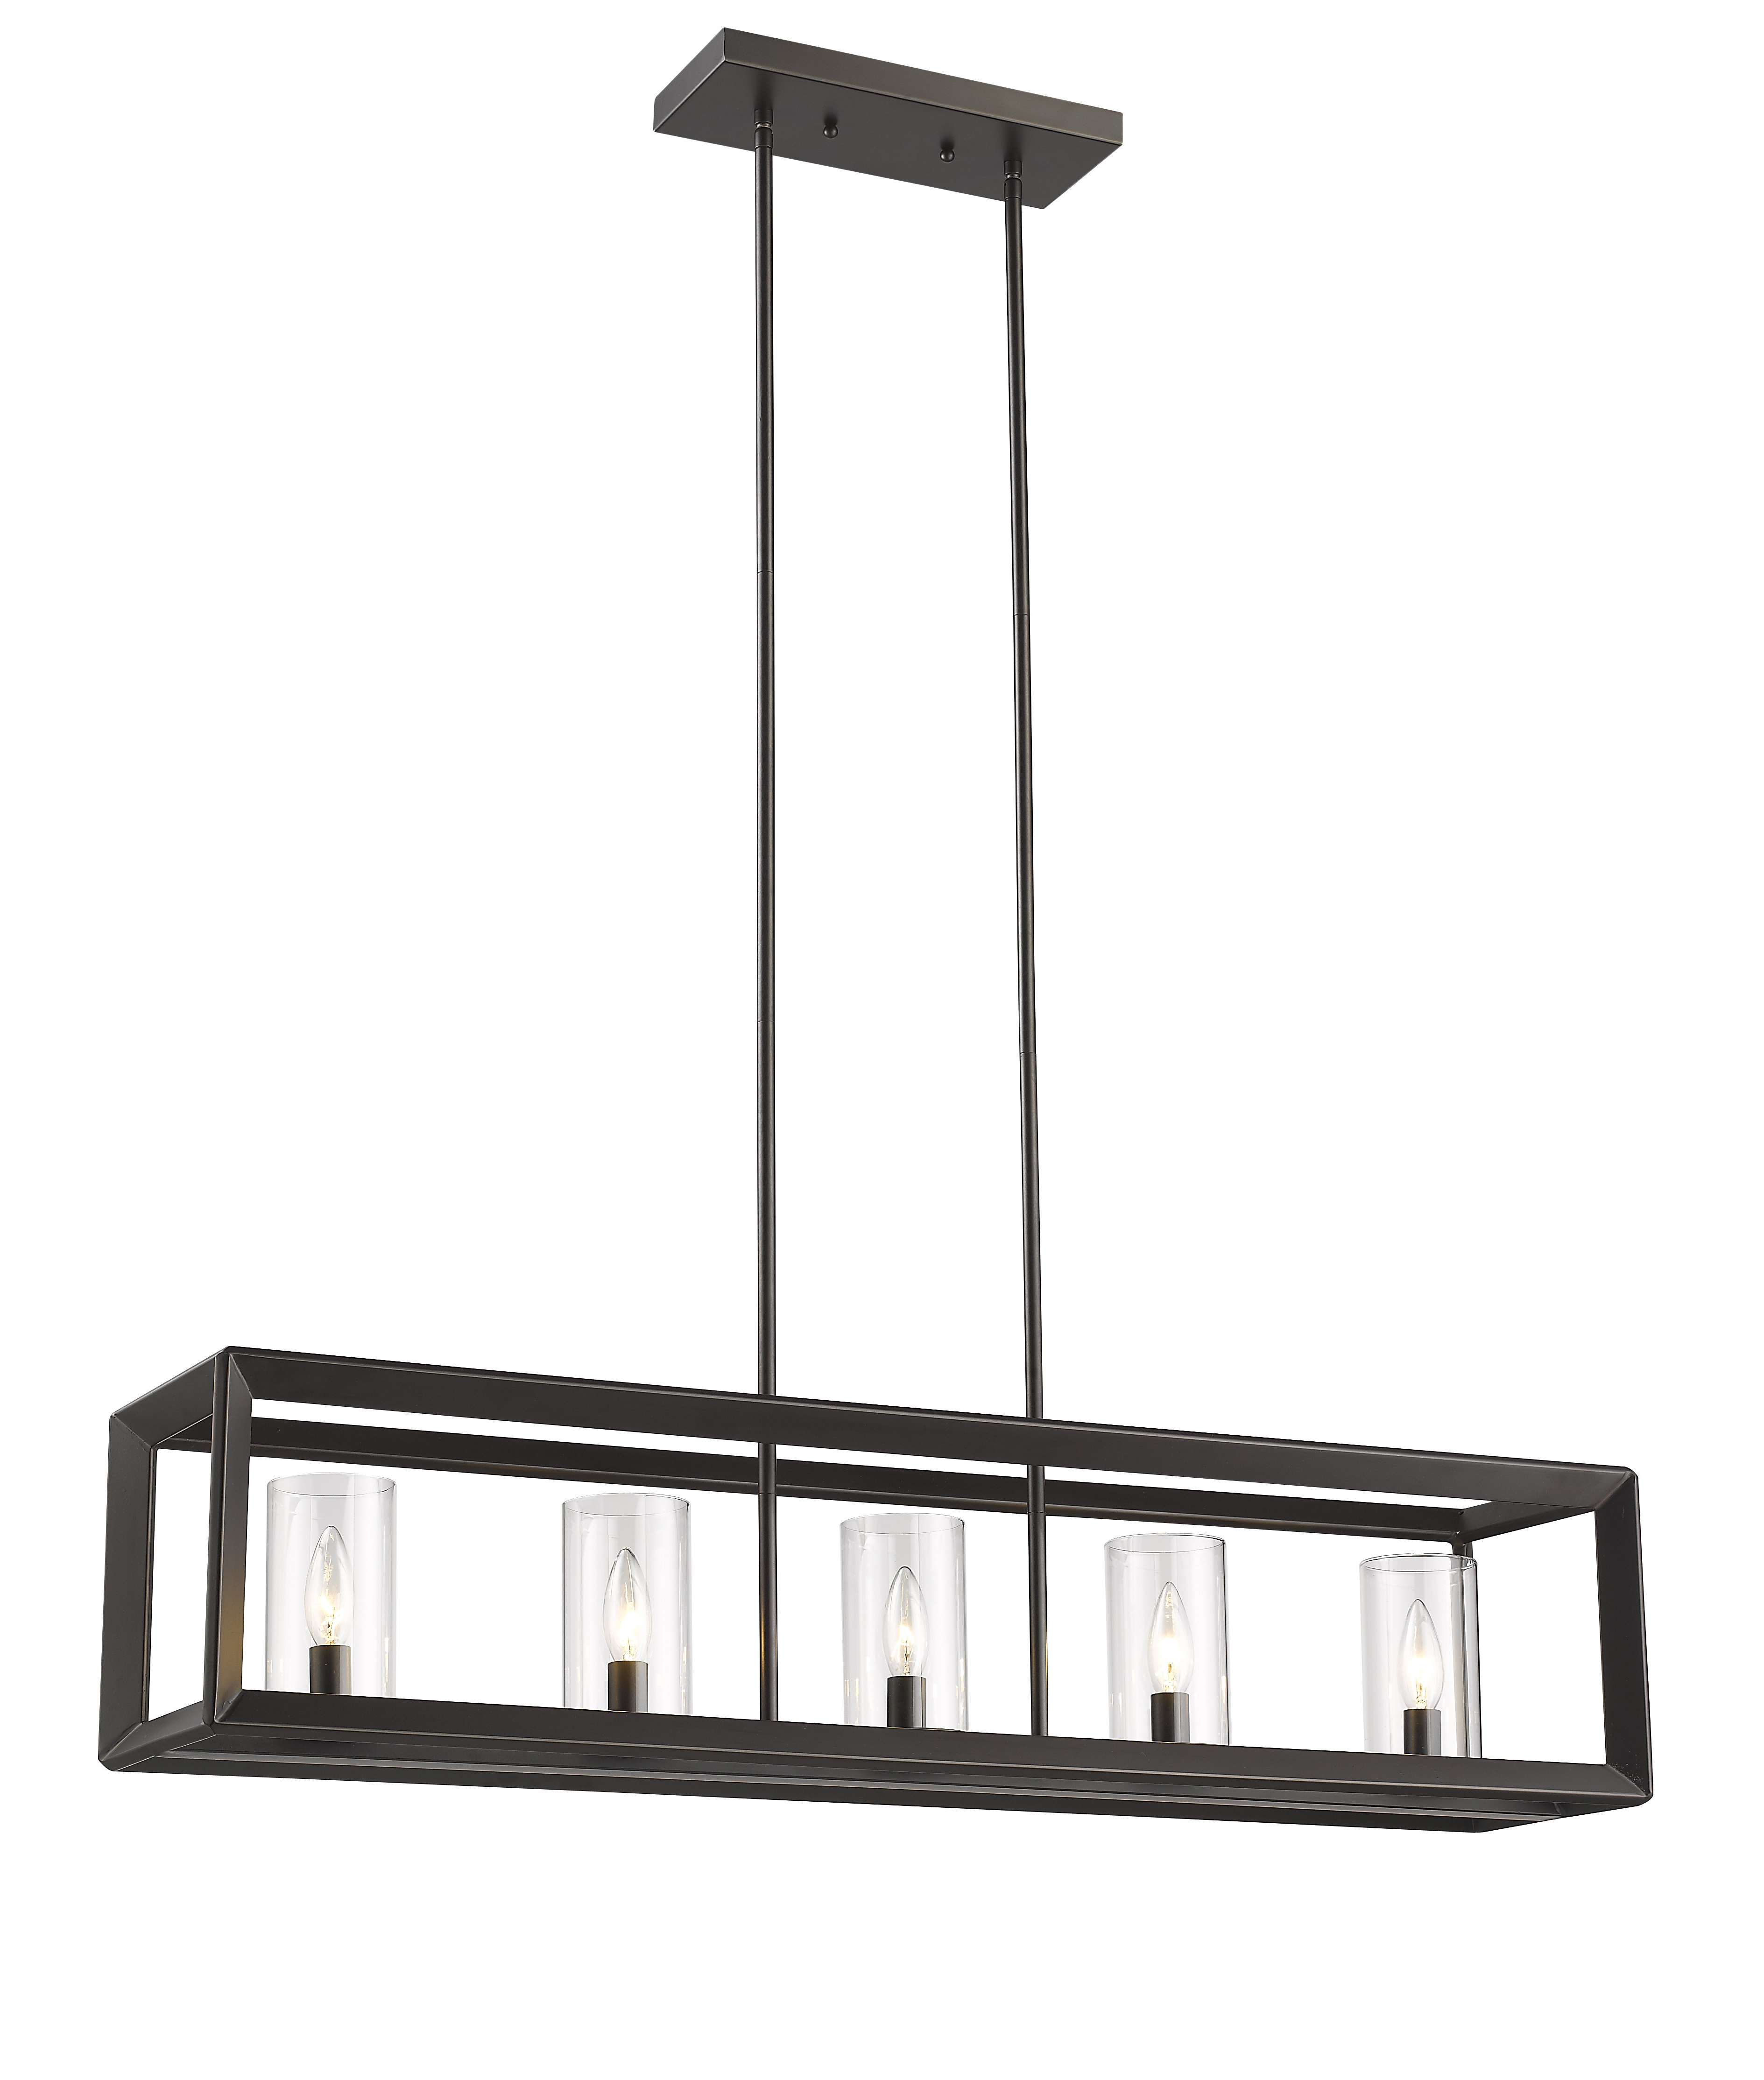 Most Recent Vandoren Canyon 5 Light Kitchen Island Linear Pendant Inside Sousa 4 Light Kitchen Island Linear Pendants (View 6 of 20)